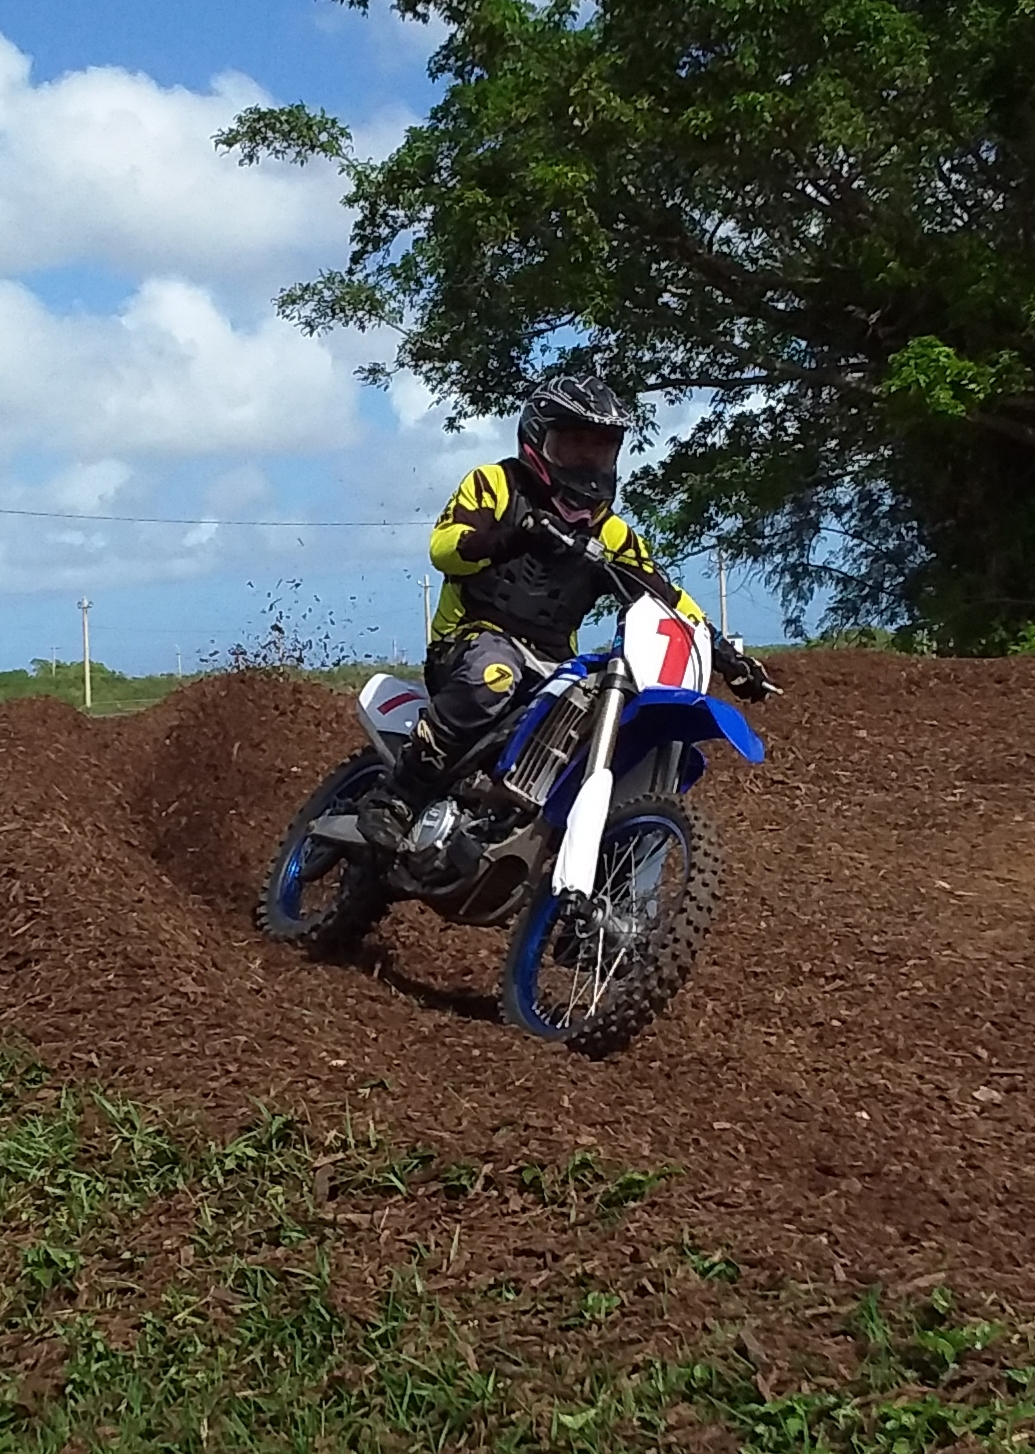 #1 Lil John Aguon took the Open Motorcycle class round 1 win